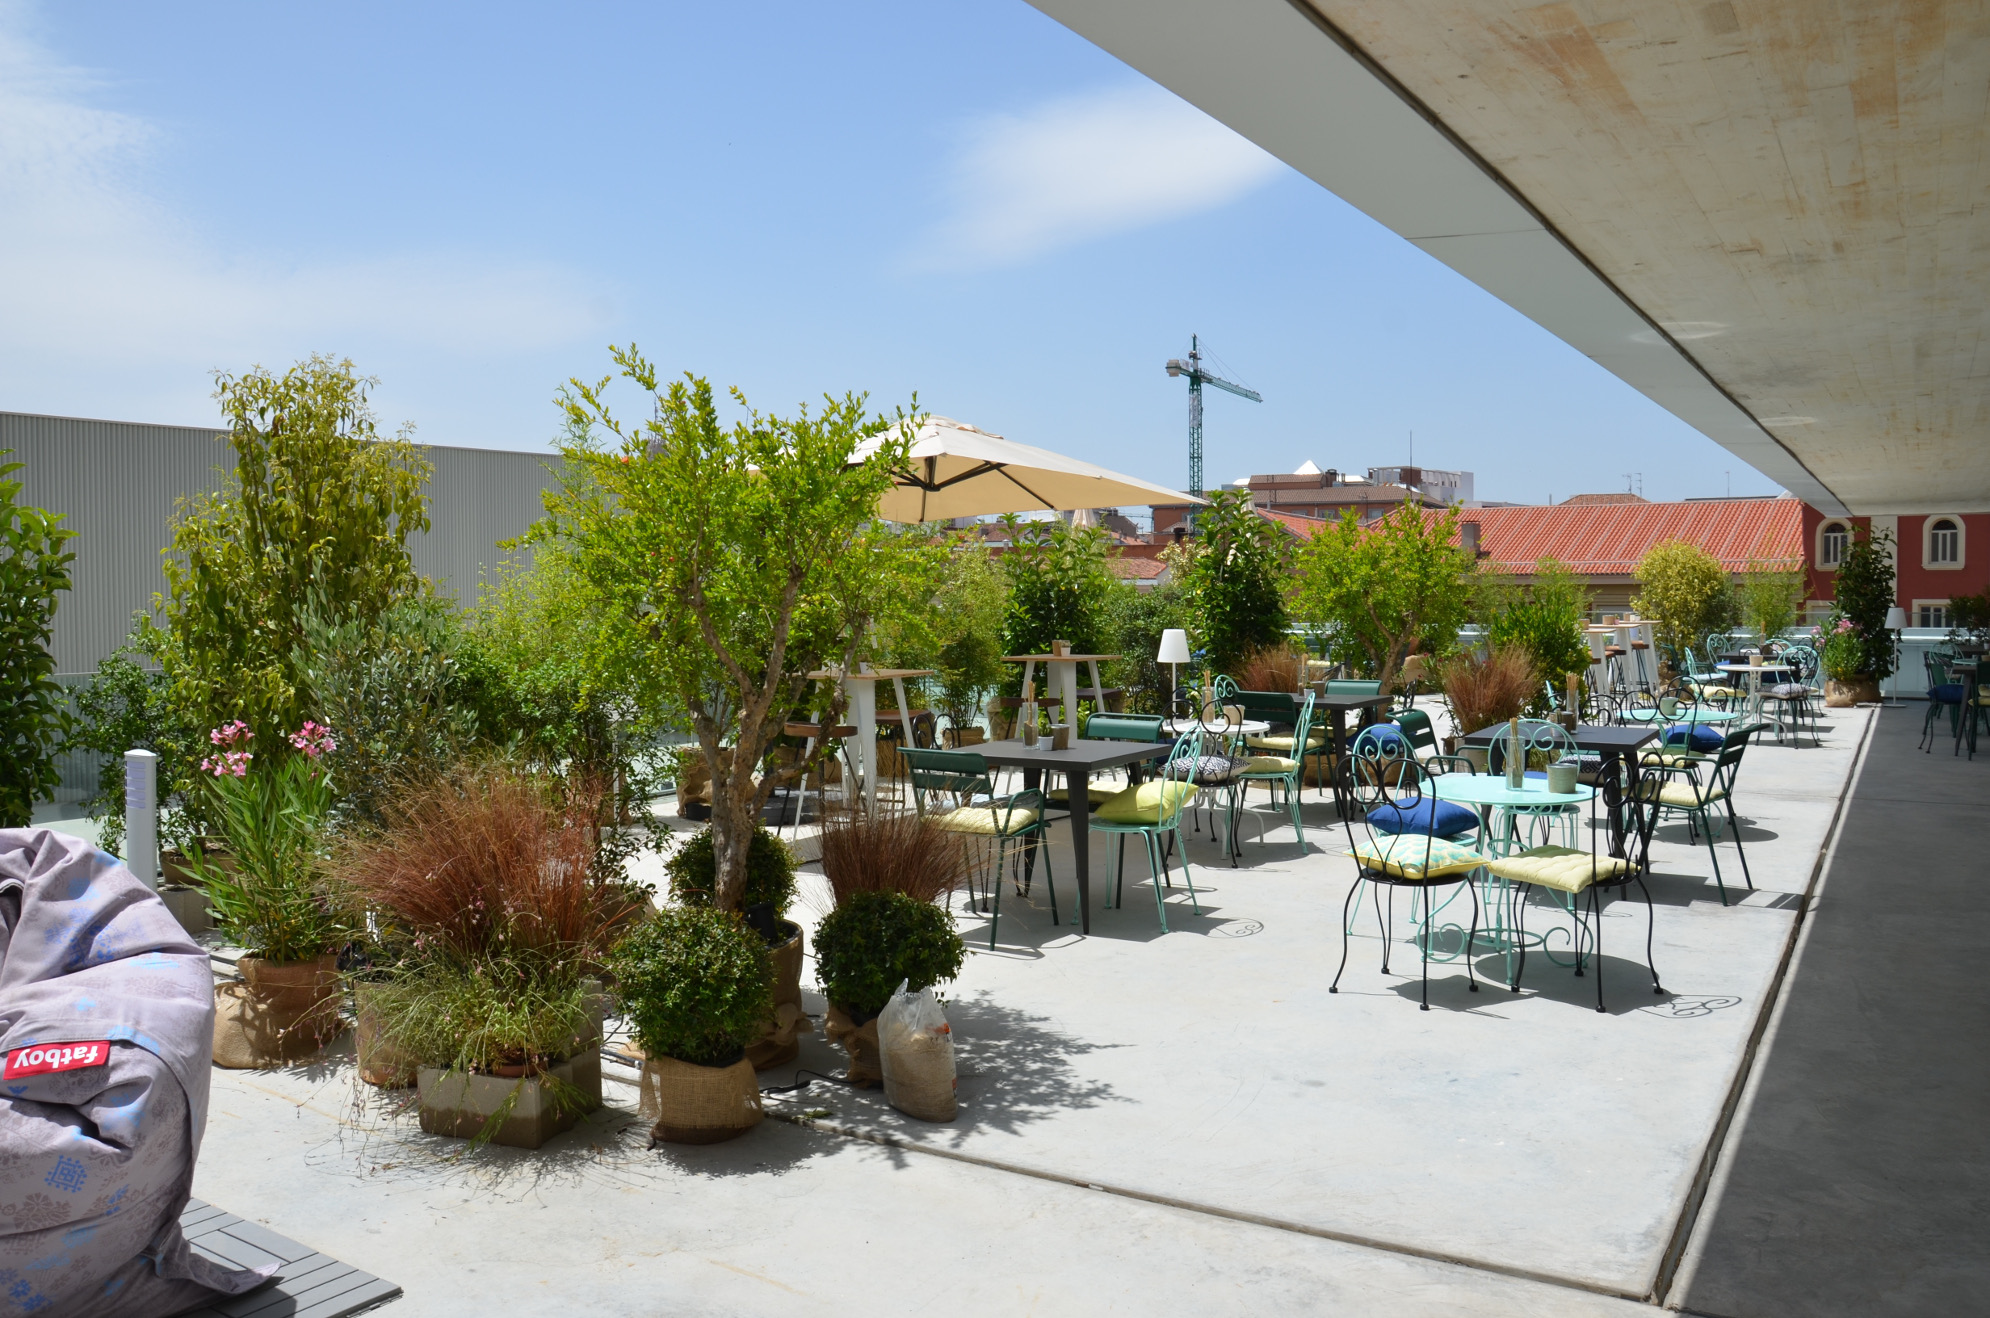 HEALTHY FOOD IN THE ROOFTOP. ONE OF MADRID BEST HIDDEN SECRETS